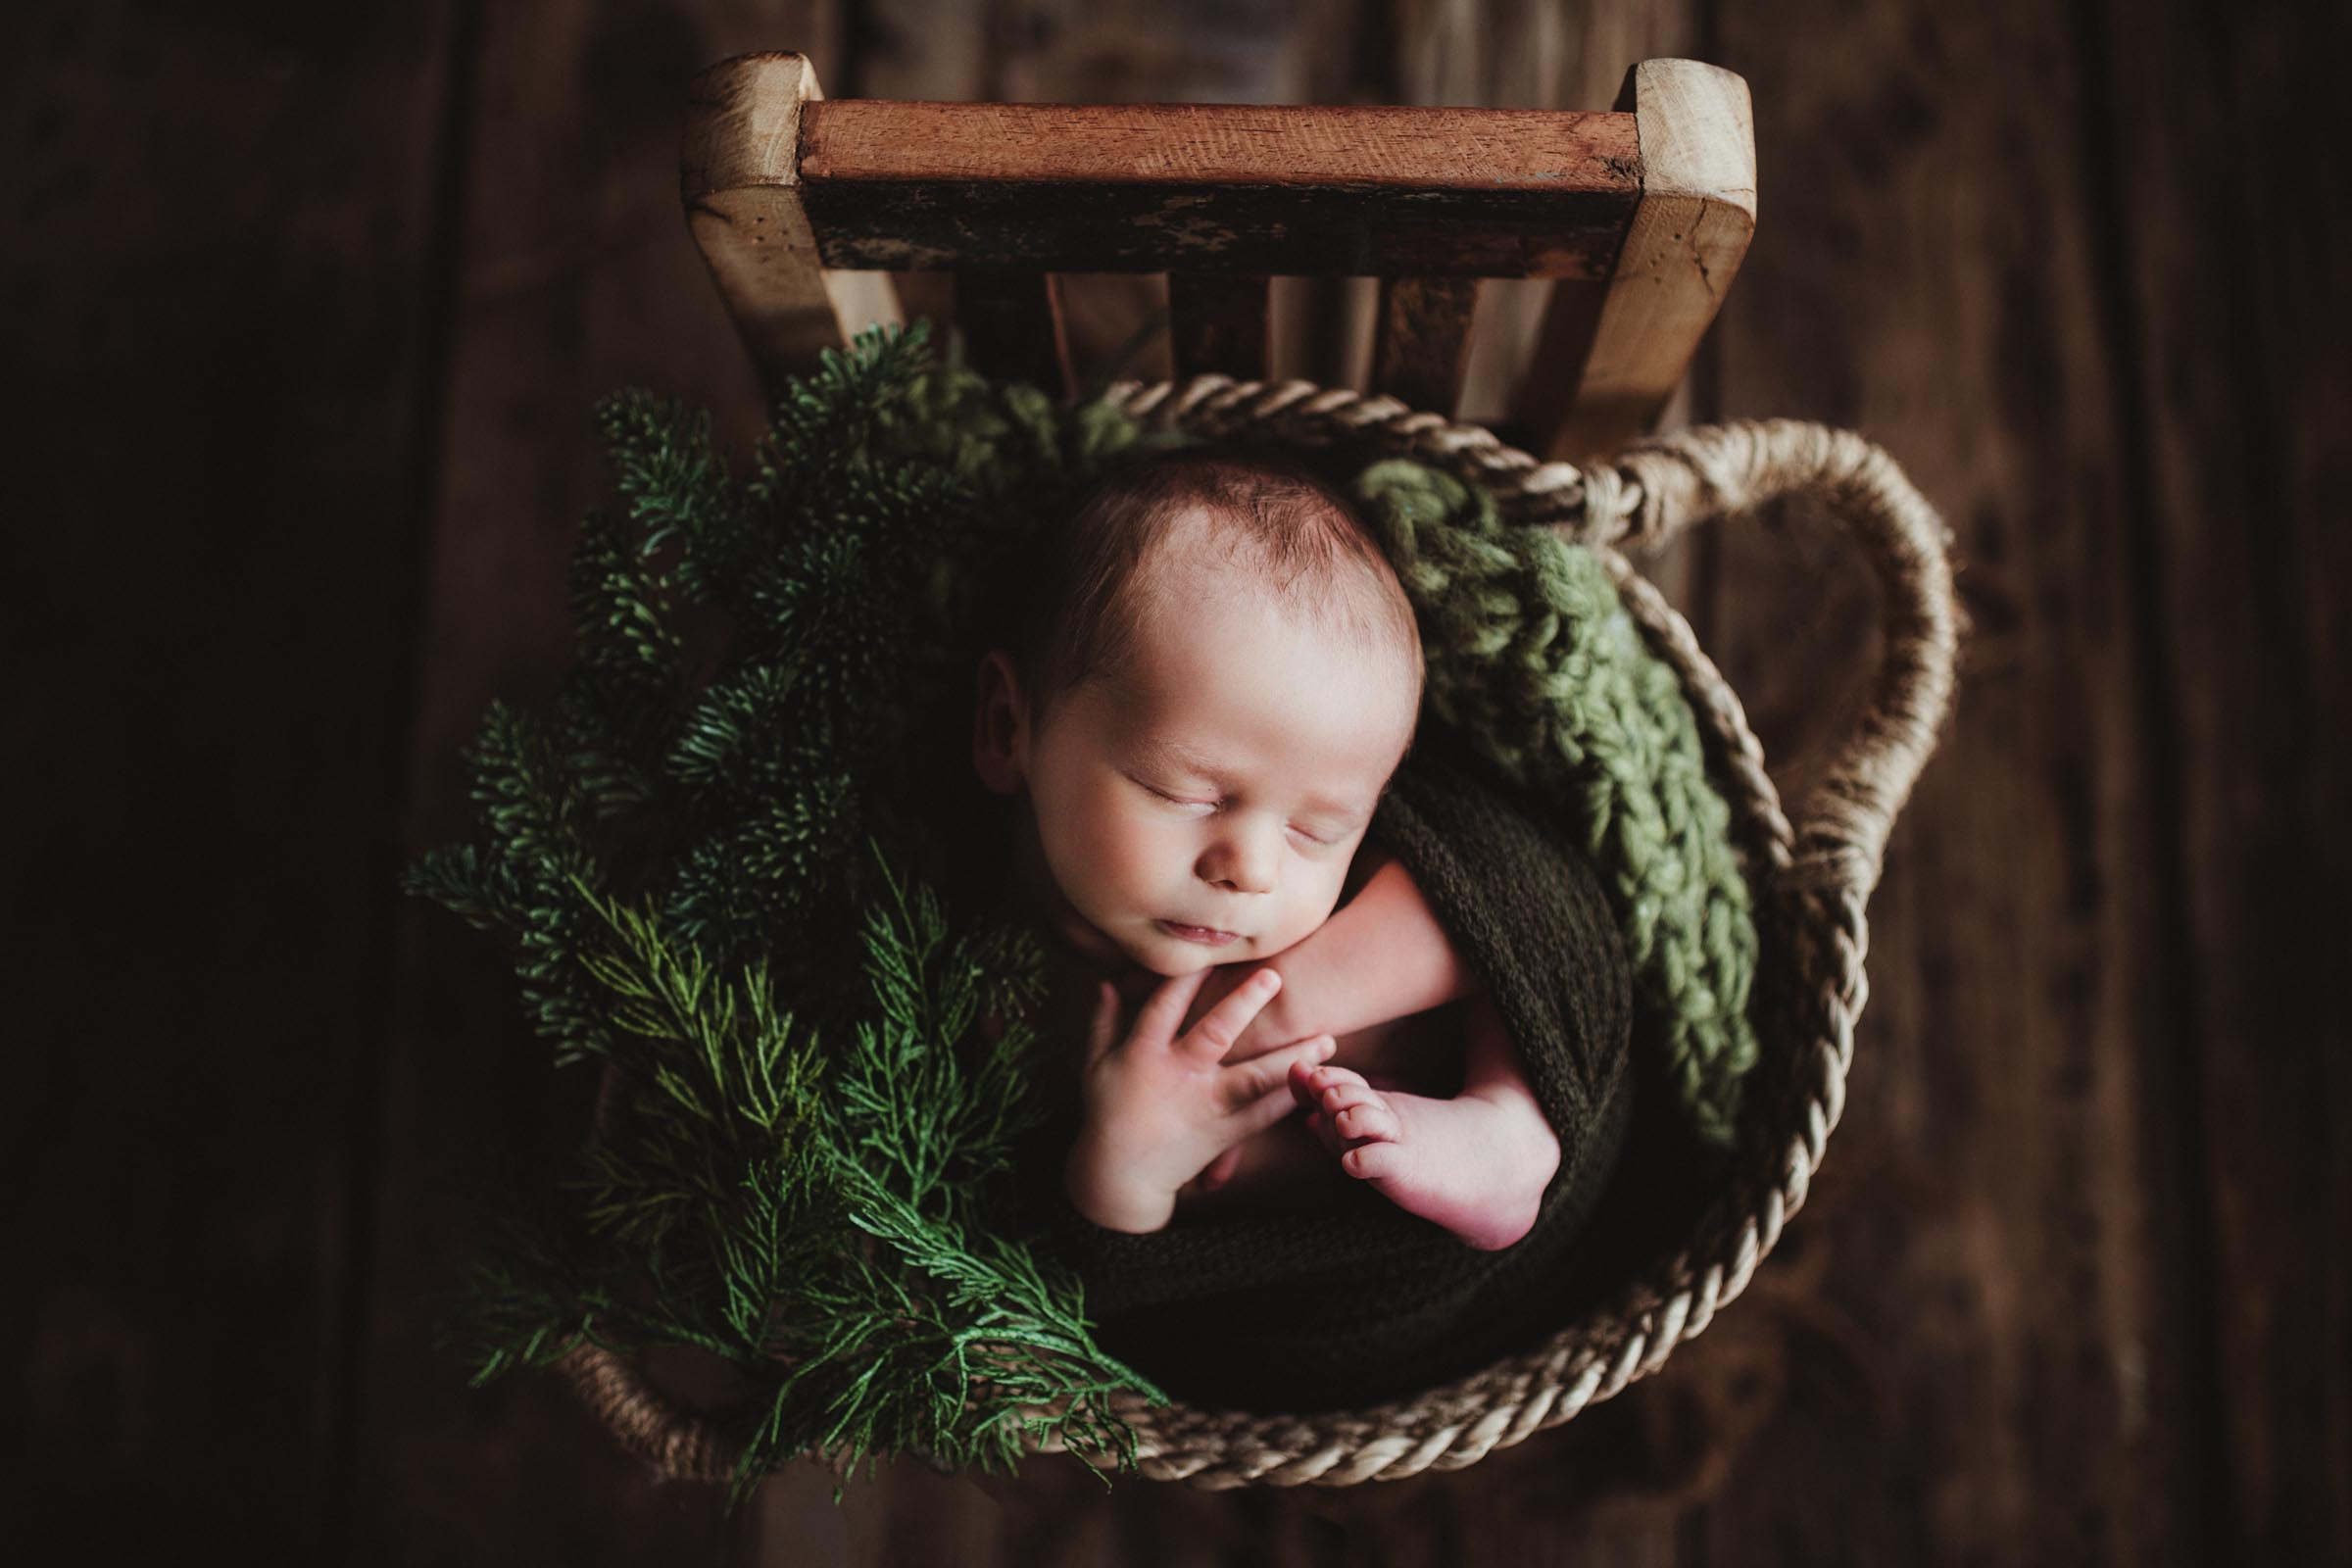 baby loosely wrapped in green blanket in a basket in studio